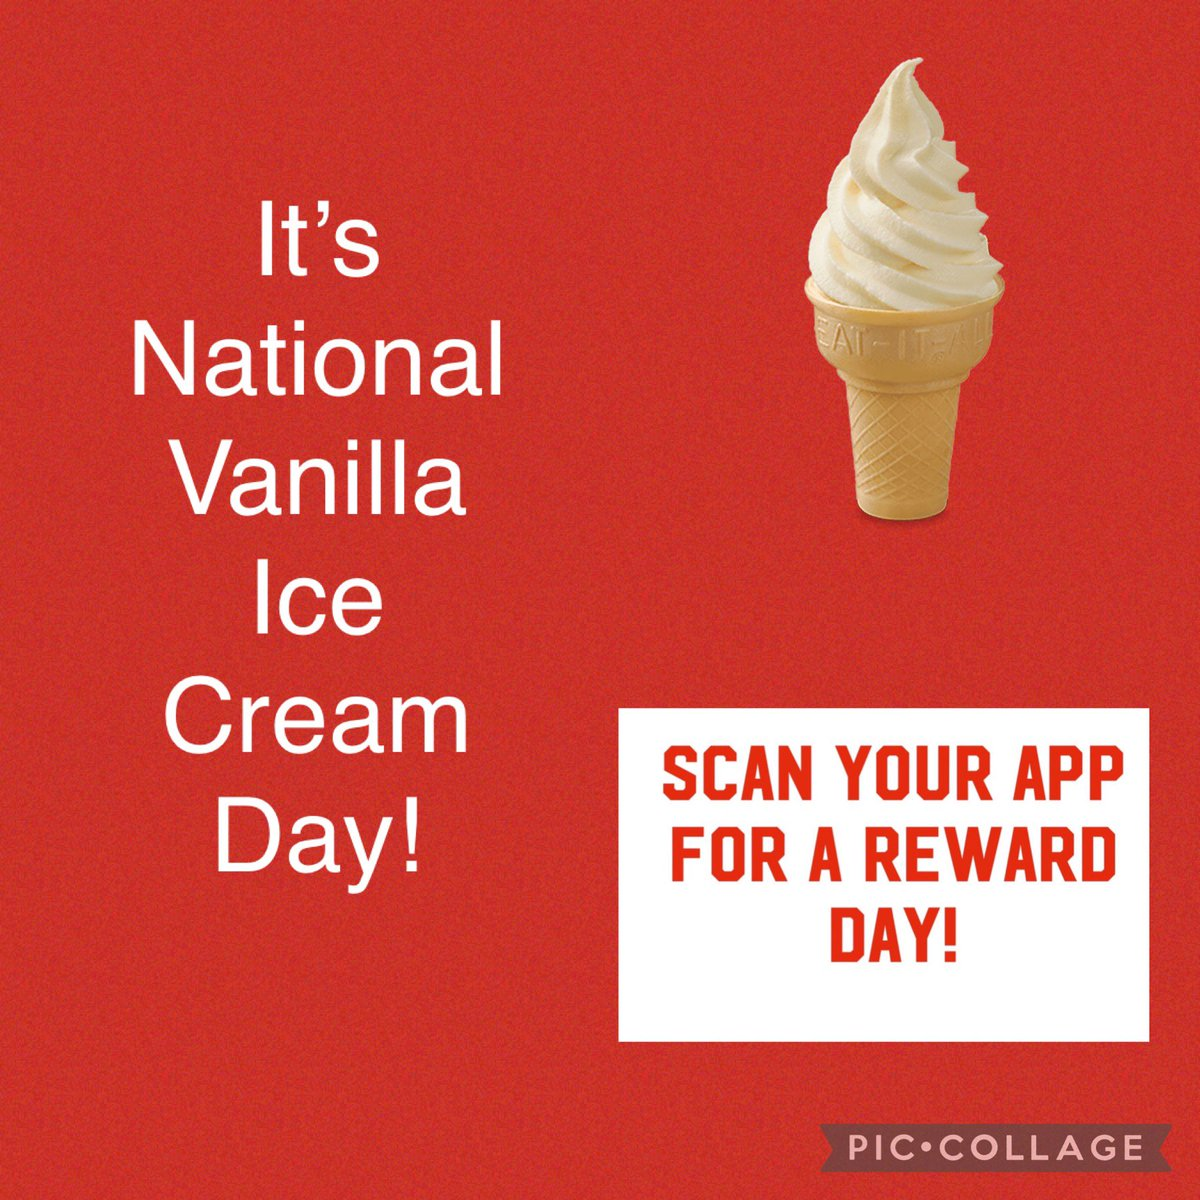 Happy Friday! It's National Vanilla Ice Cream Day, and we're celebrating! *Make a purchase in drive-thru, scan and have an IceDream Cone reward added to your app! *Reward added in the next week *This location only *(1) per person *Does not include curbside or mobile order  #cfa https://t.co/ja6U4ONTx9